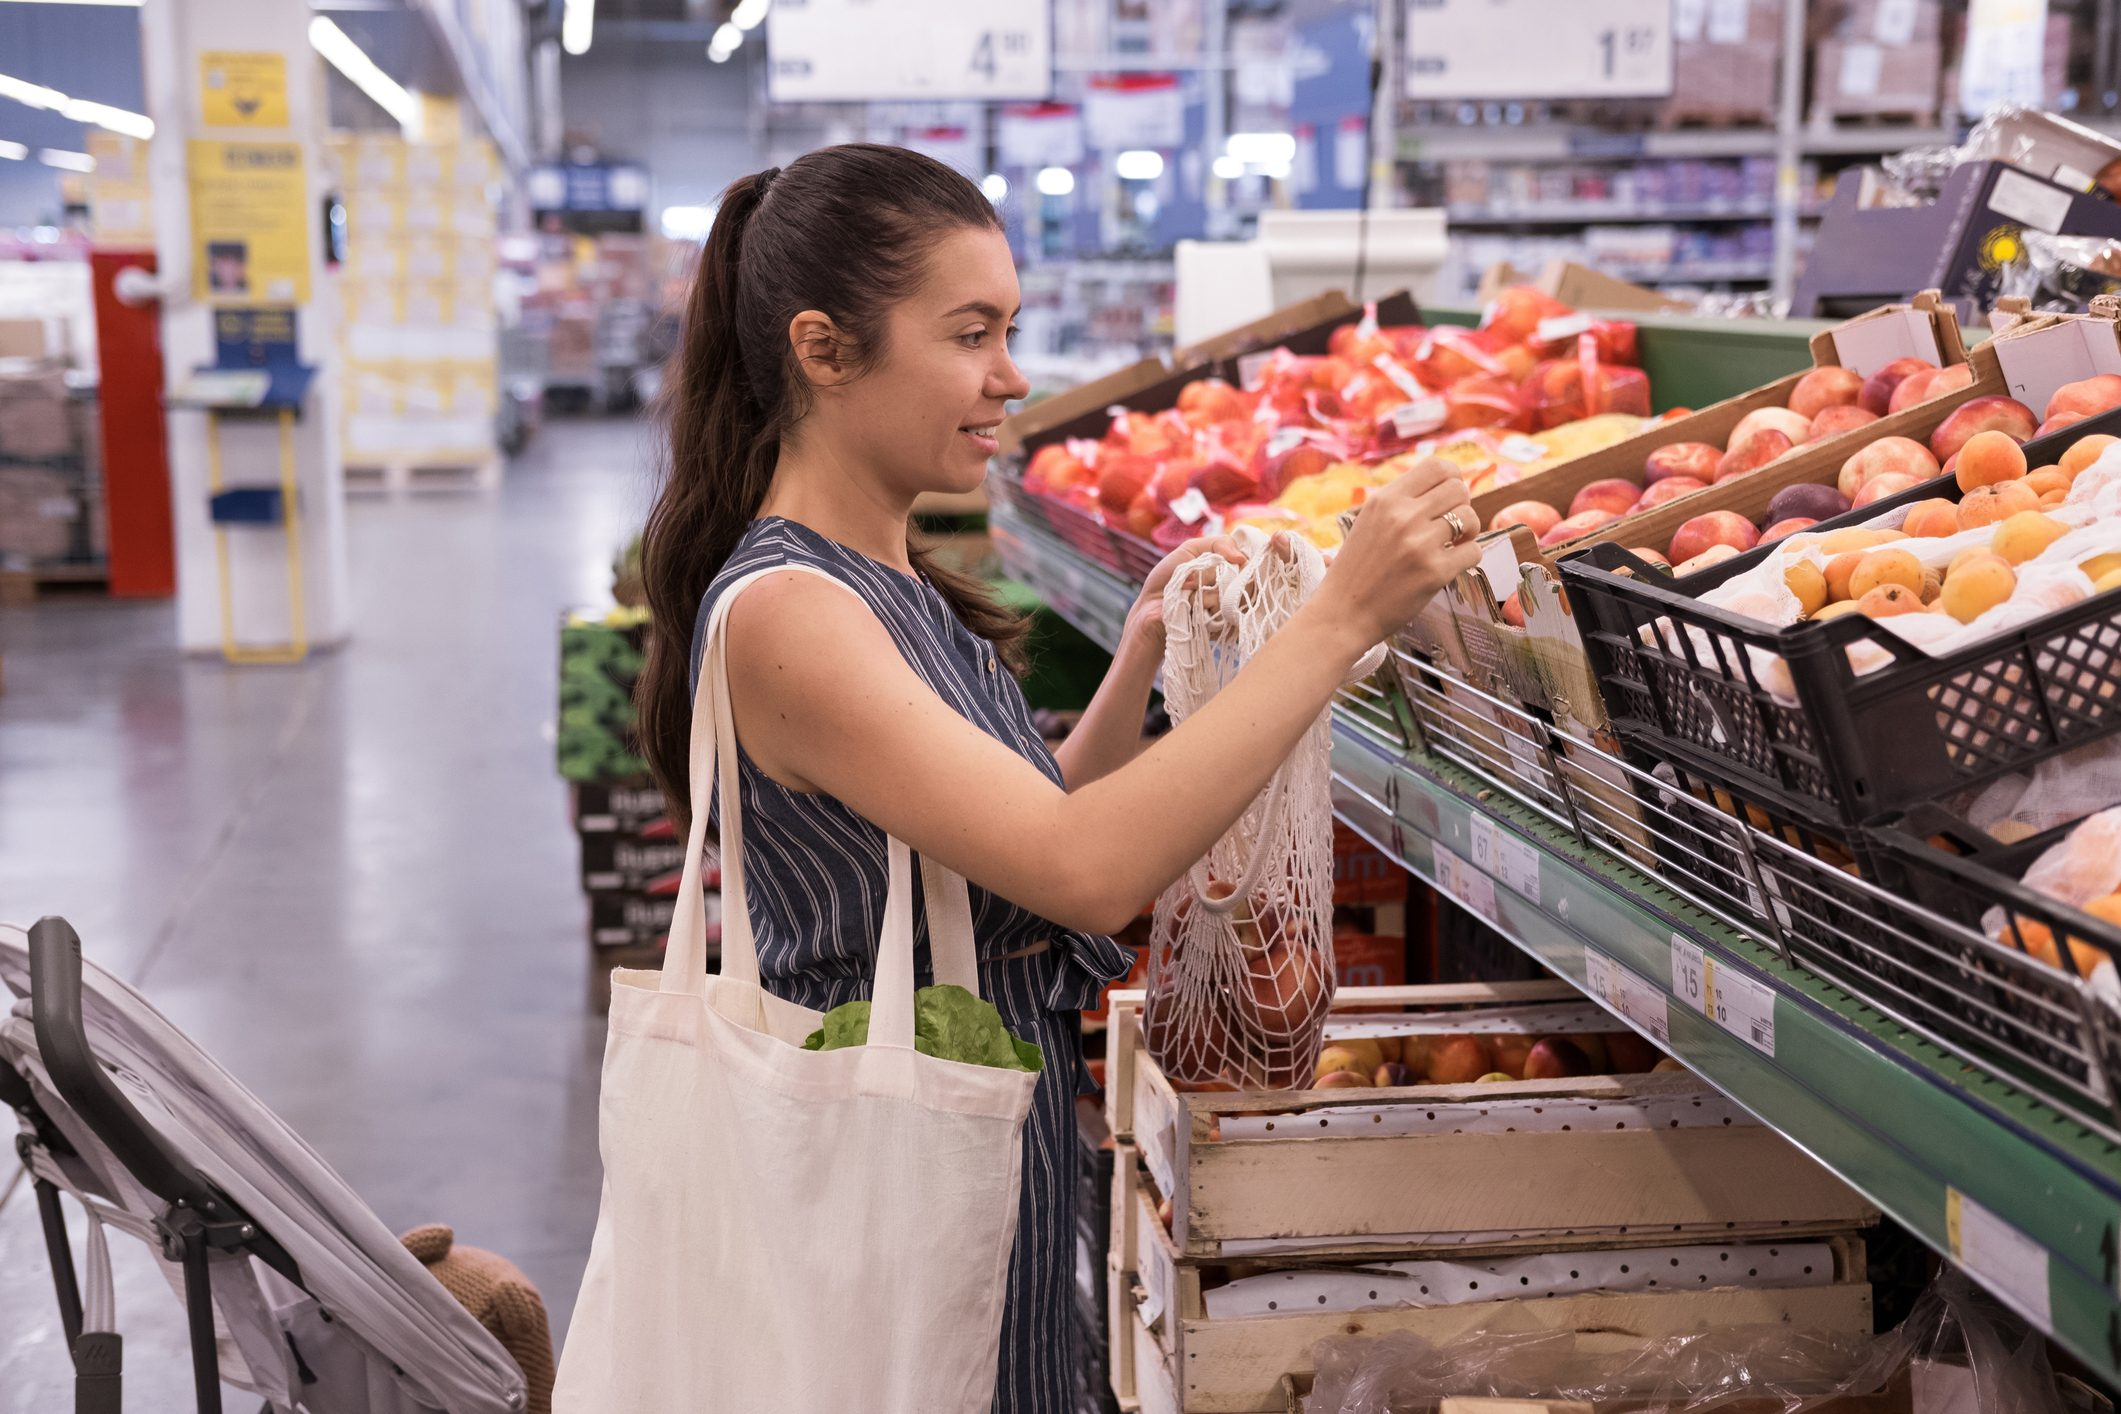 7 Tips To Sharpen Your Grocery Shopping Skills